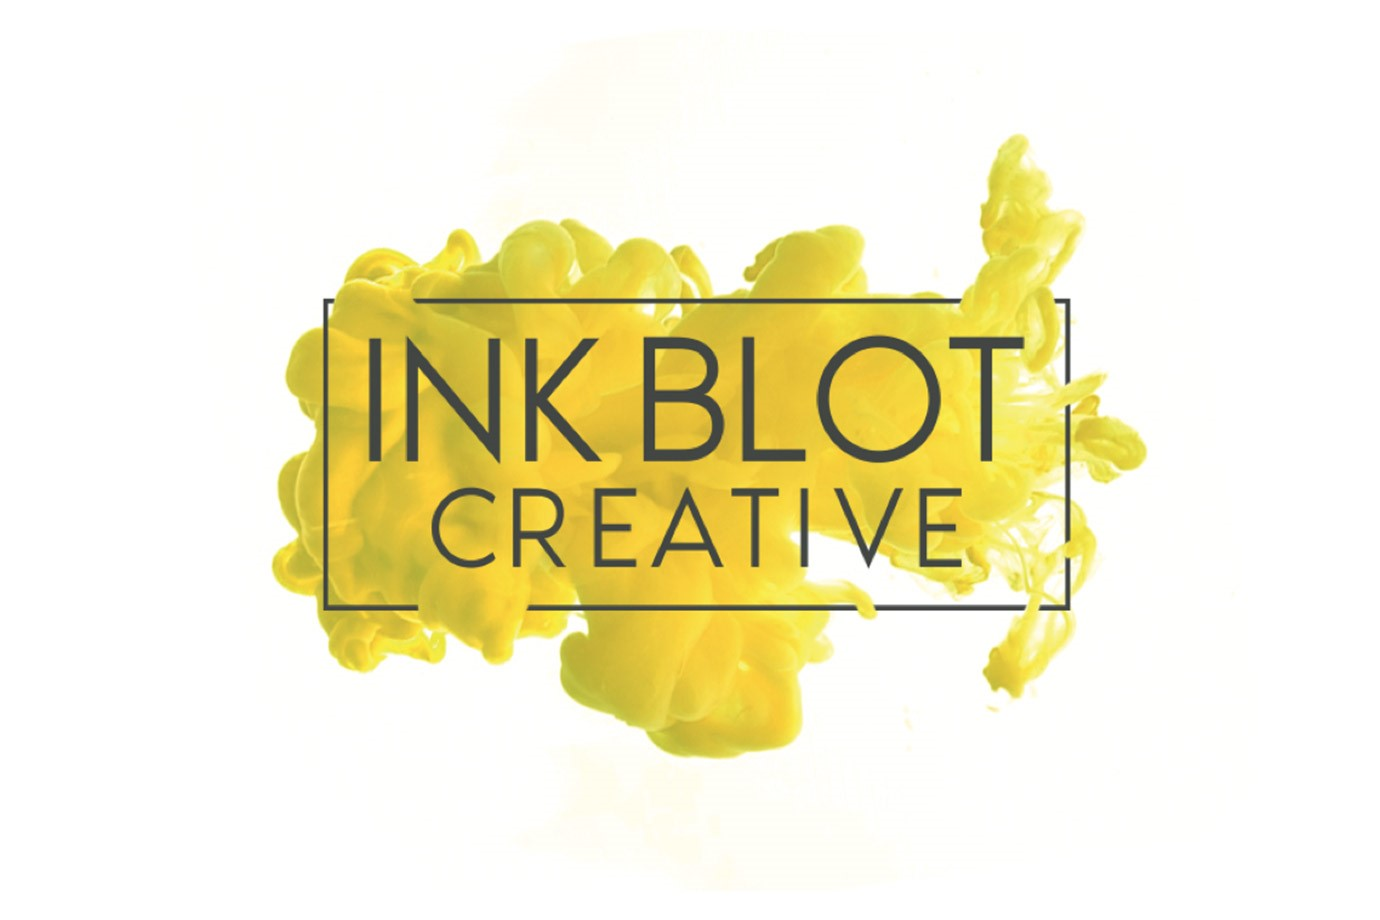 Ink Blot Creative Limited  logo